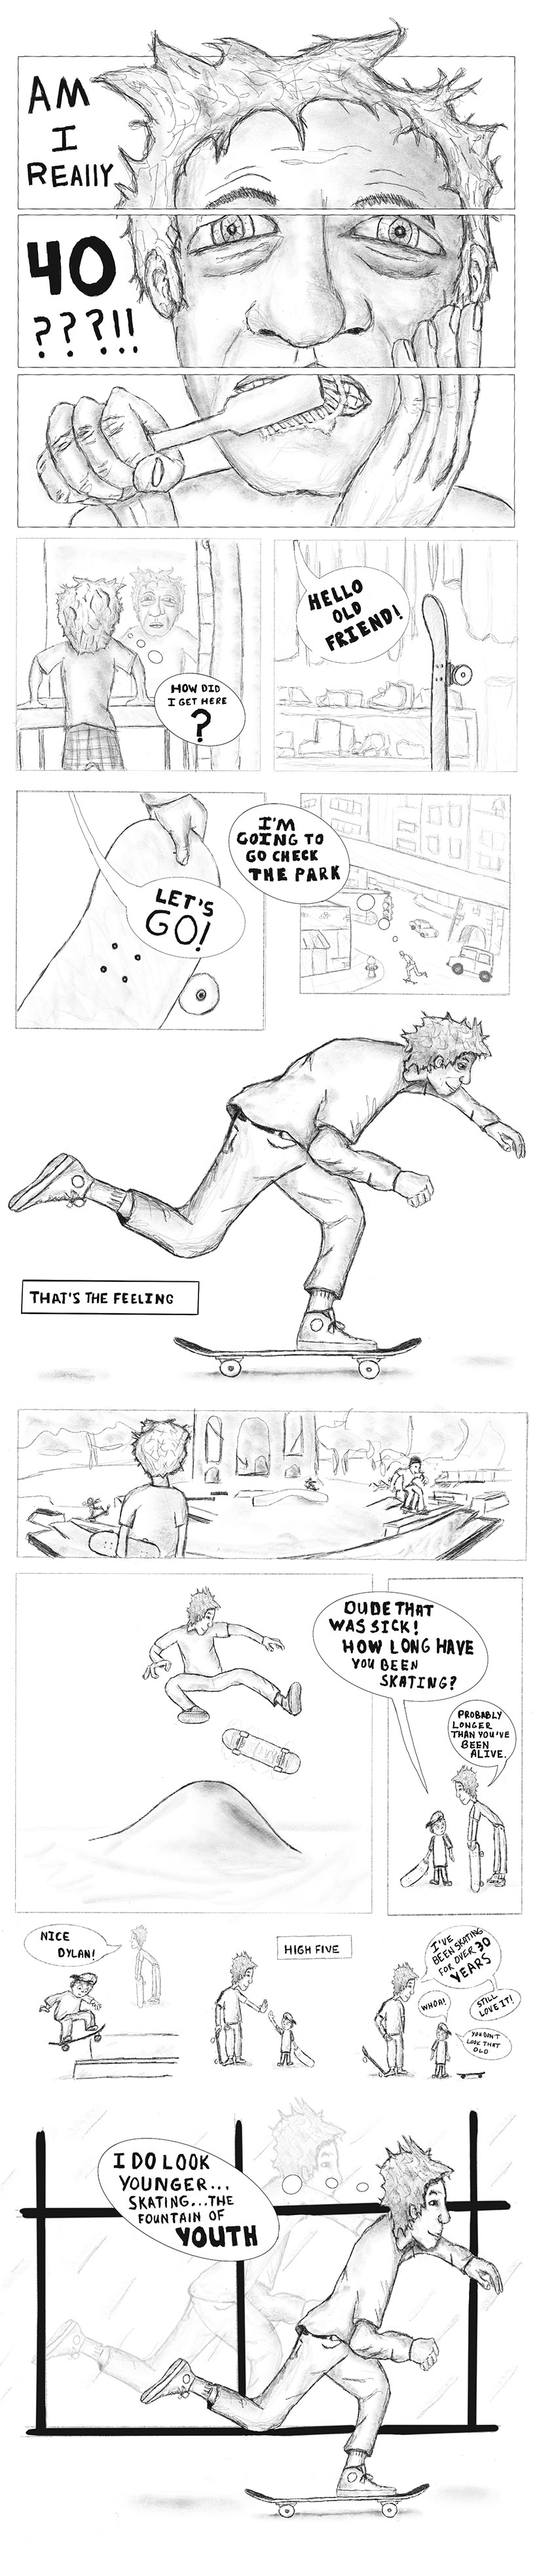 the 40 yr old skater comic